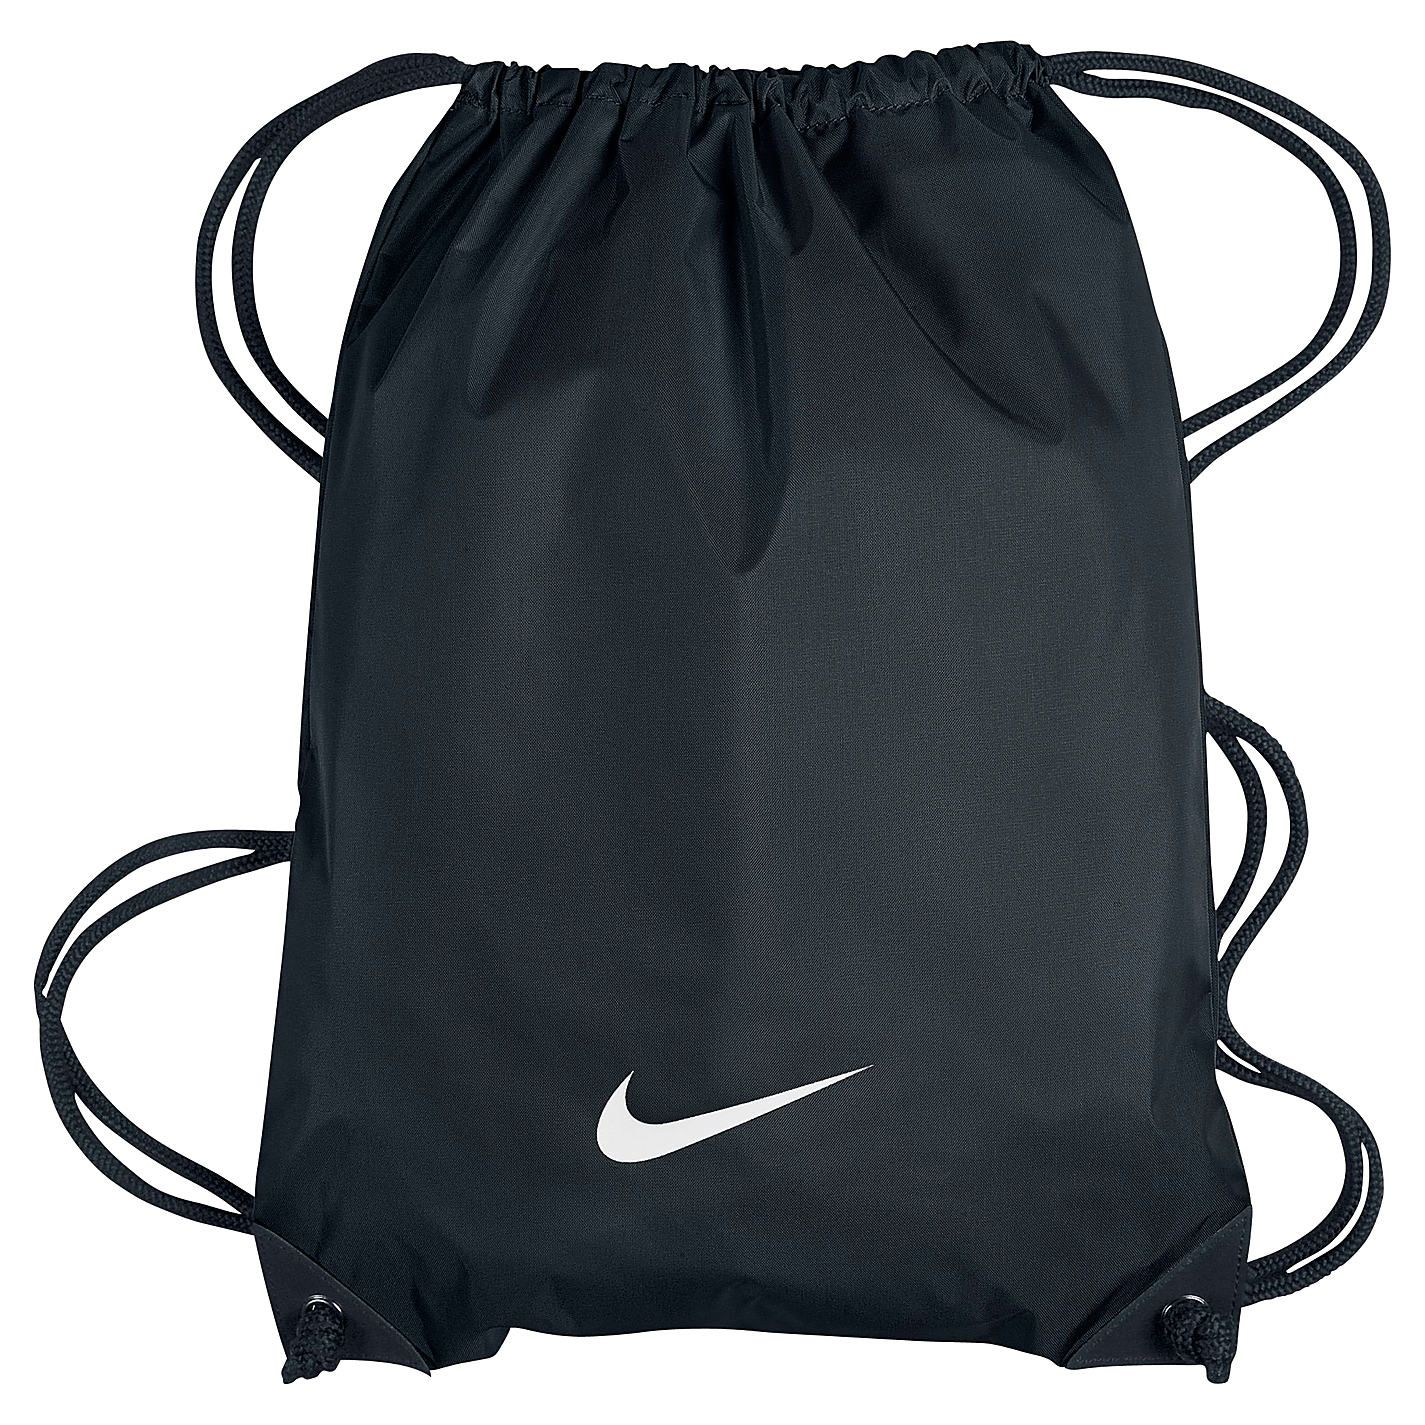 black nike drawstring bag | Theo | Pinterest | Nike, Black nikes ...